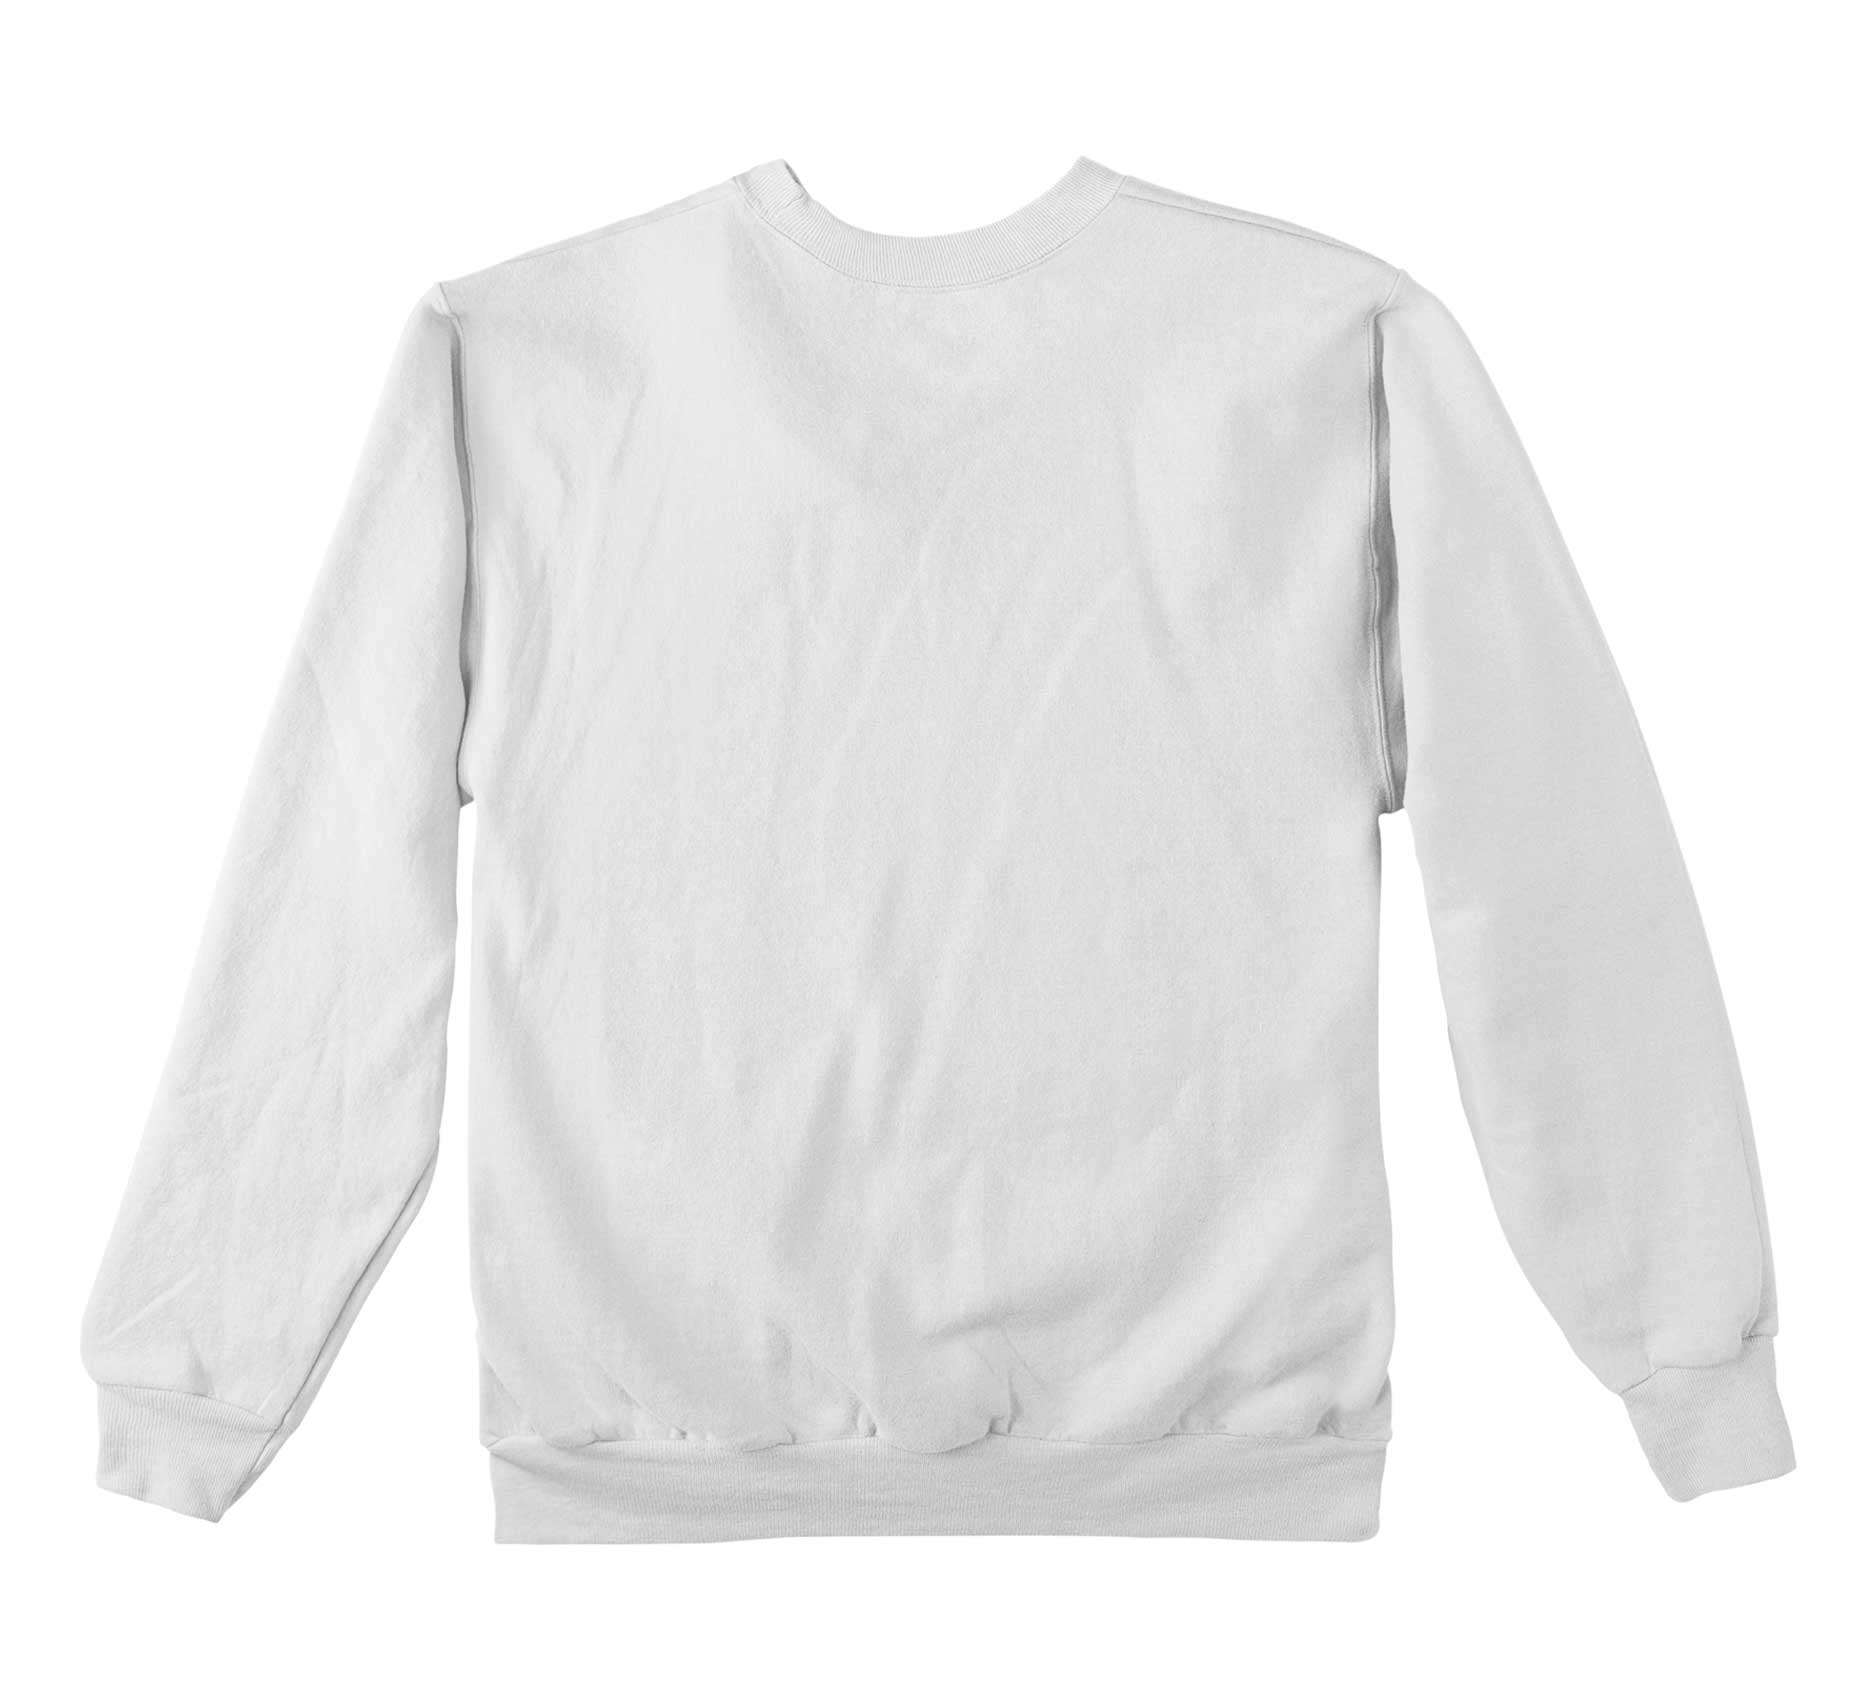 9e948aad Placeit - Mockup of the Back of a Crewneck Sweatshirt on a Hanger